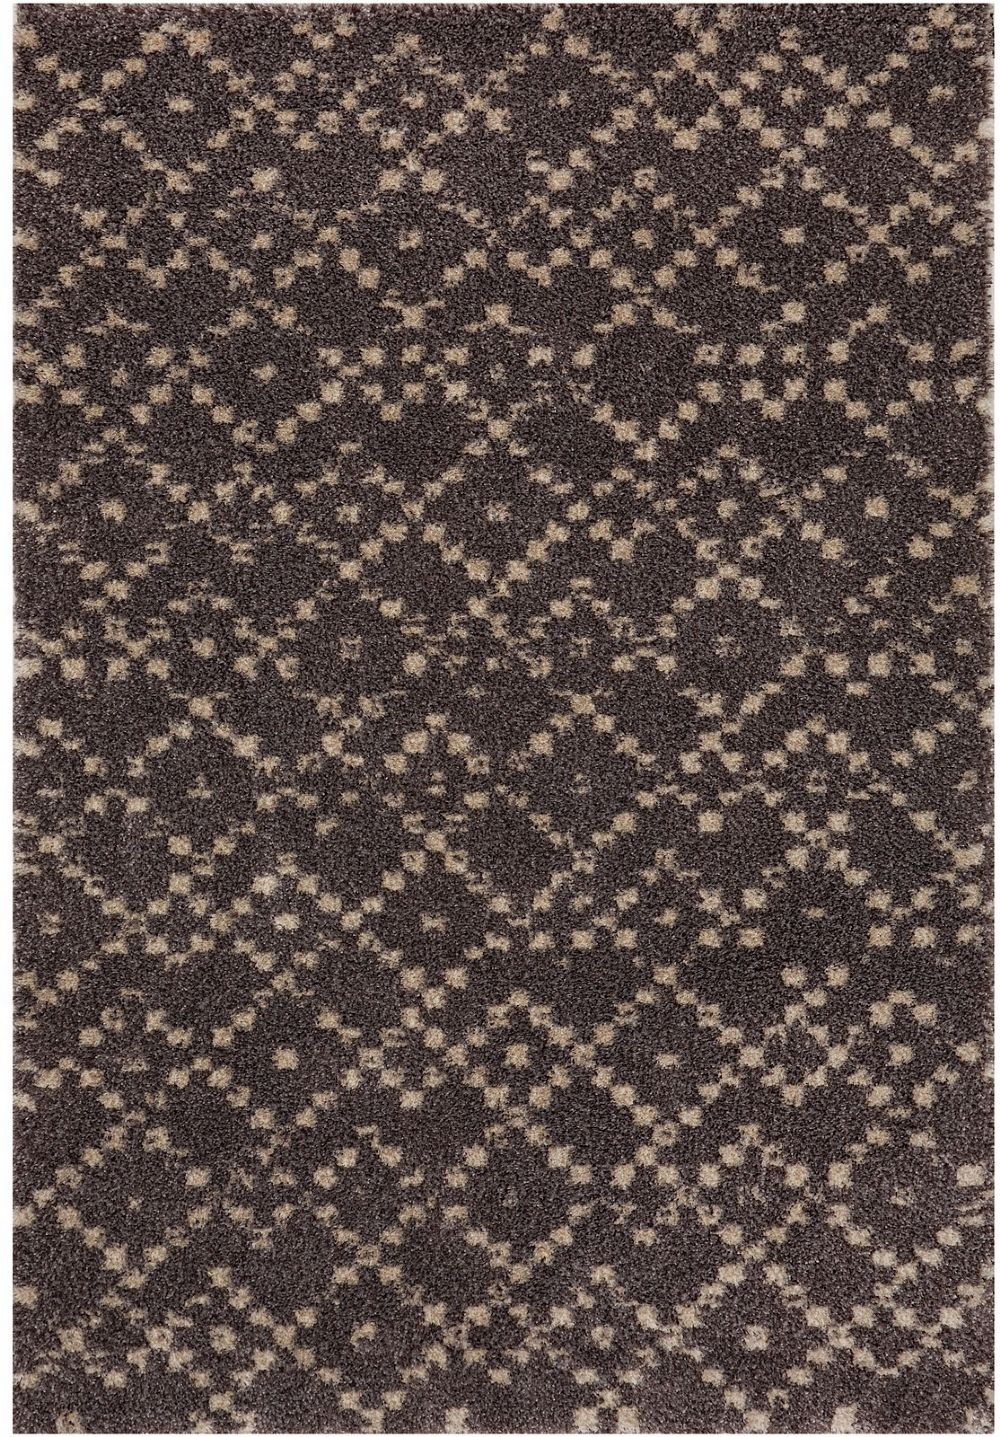 karastan prima shag transitional area rug collection